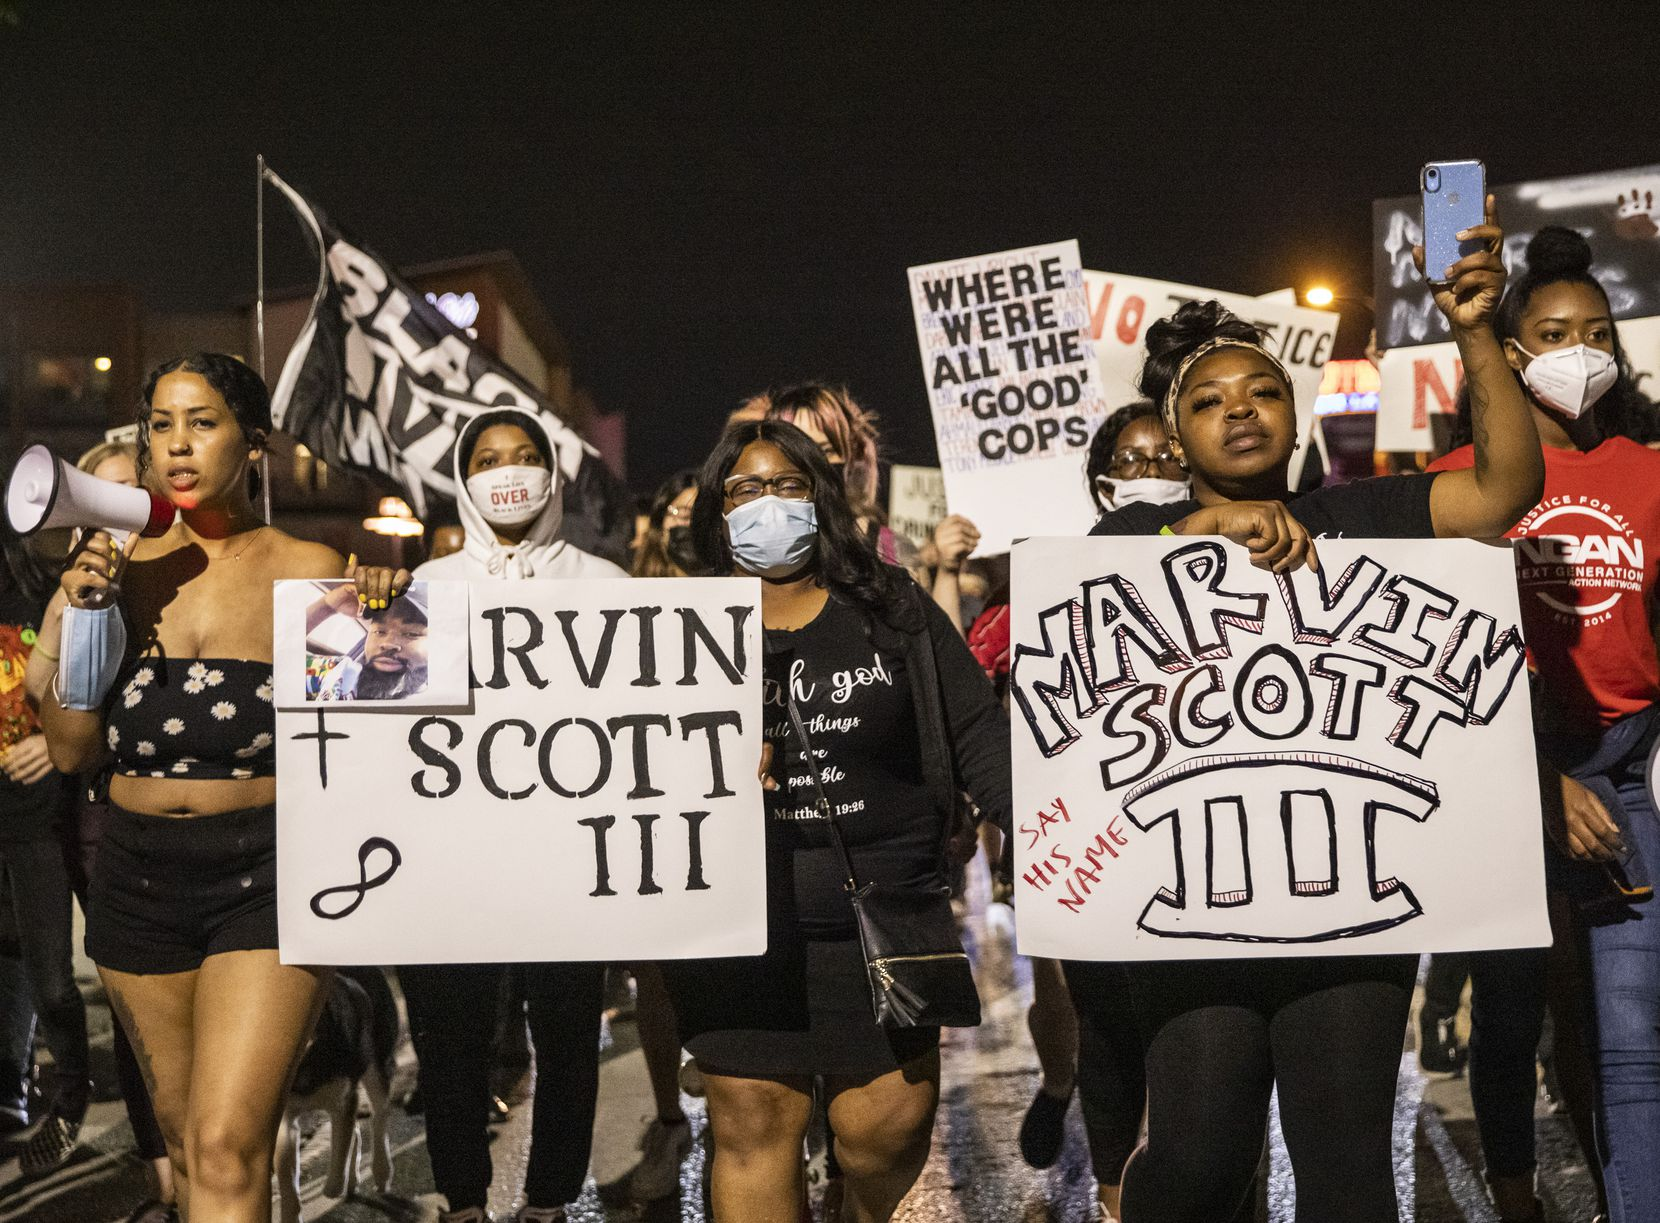 Activist Renee White (left); Marvin Scott III's mother, LaSandra Scott (center); and his sister LaChay Batts (right) participated in a protest march down Botham Jean Boulevard in Dallas in April.